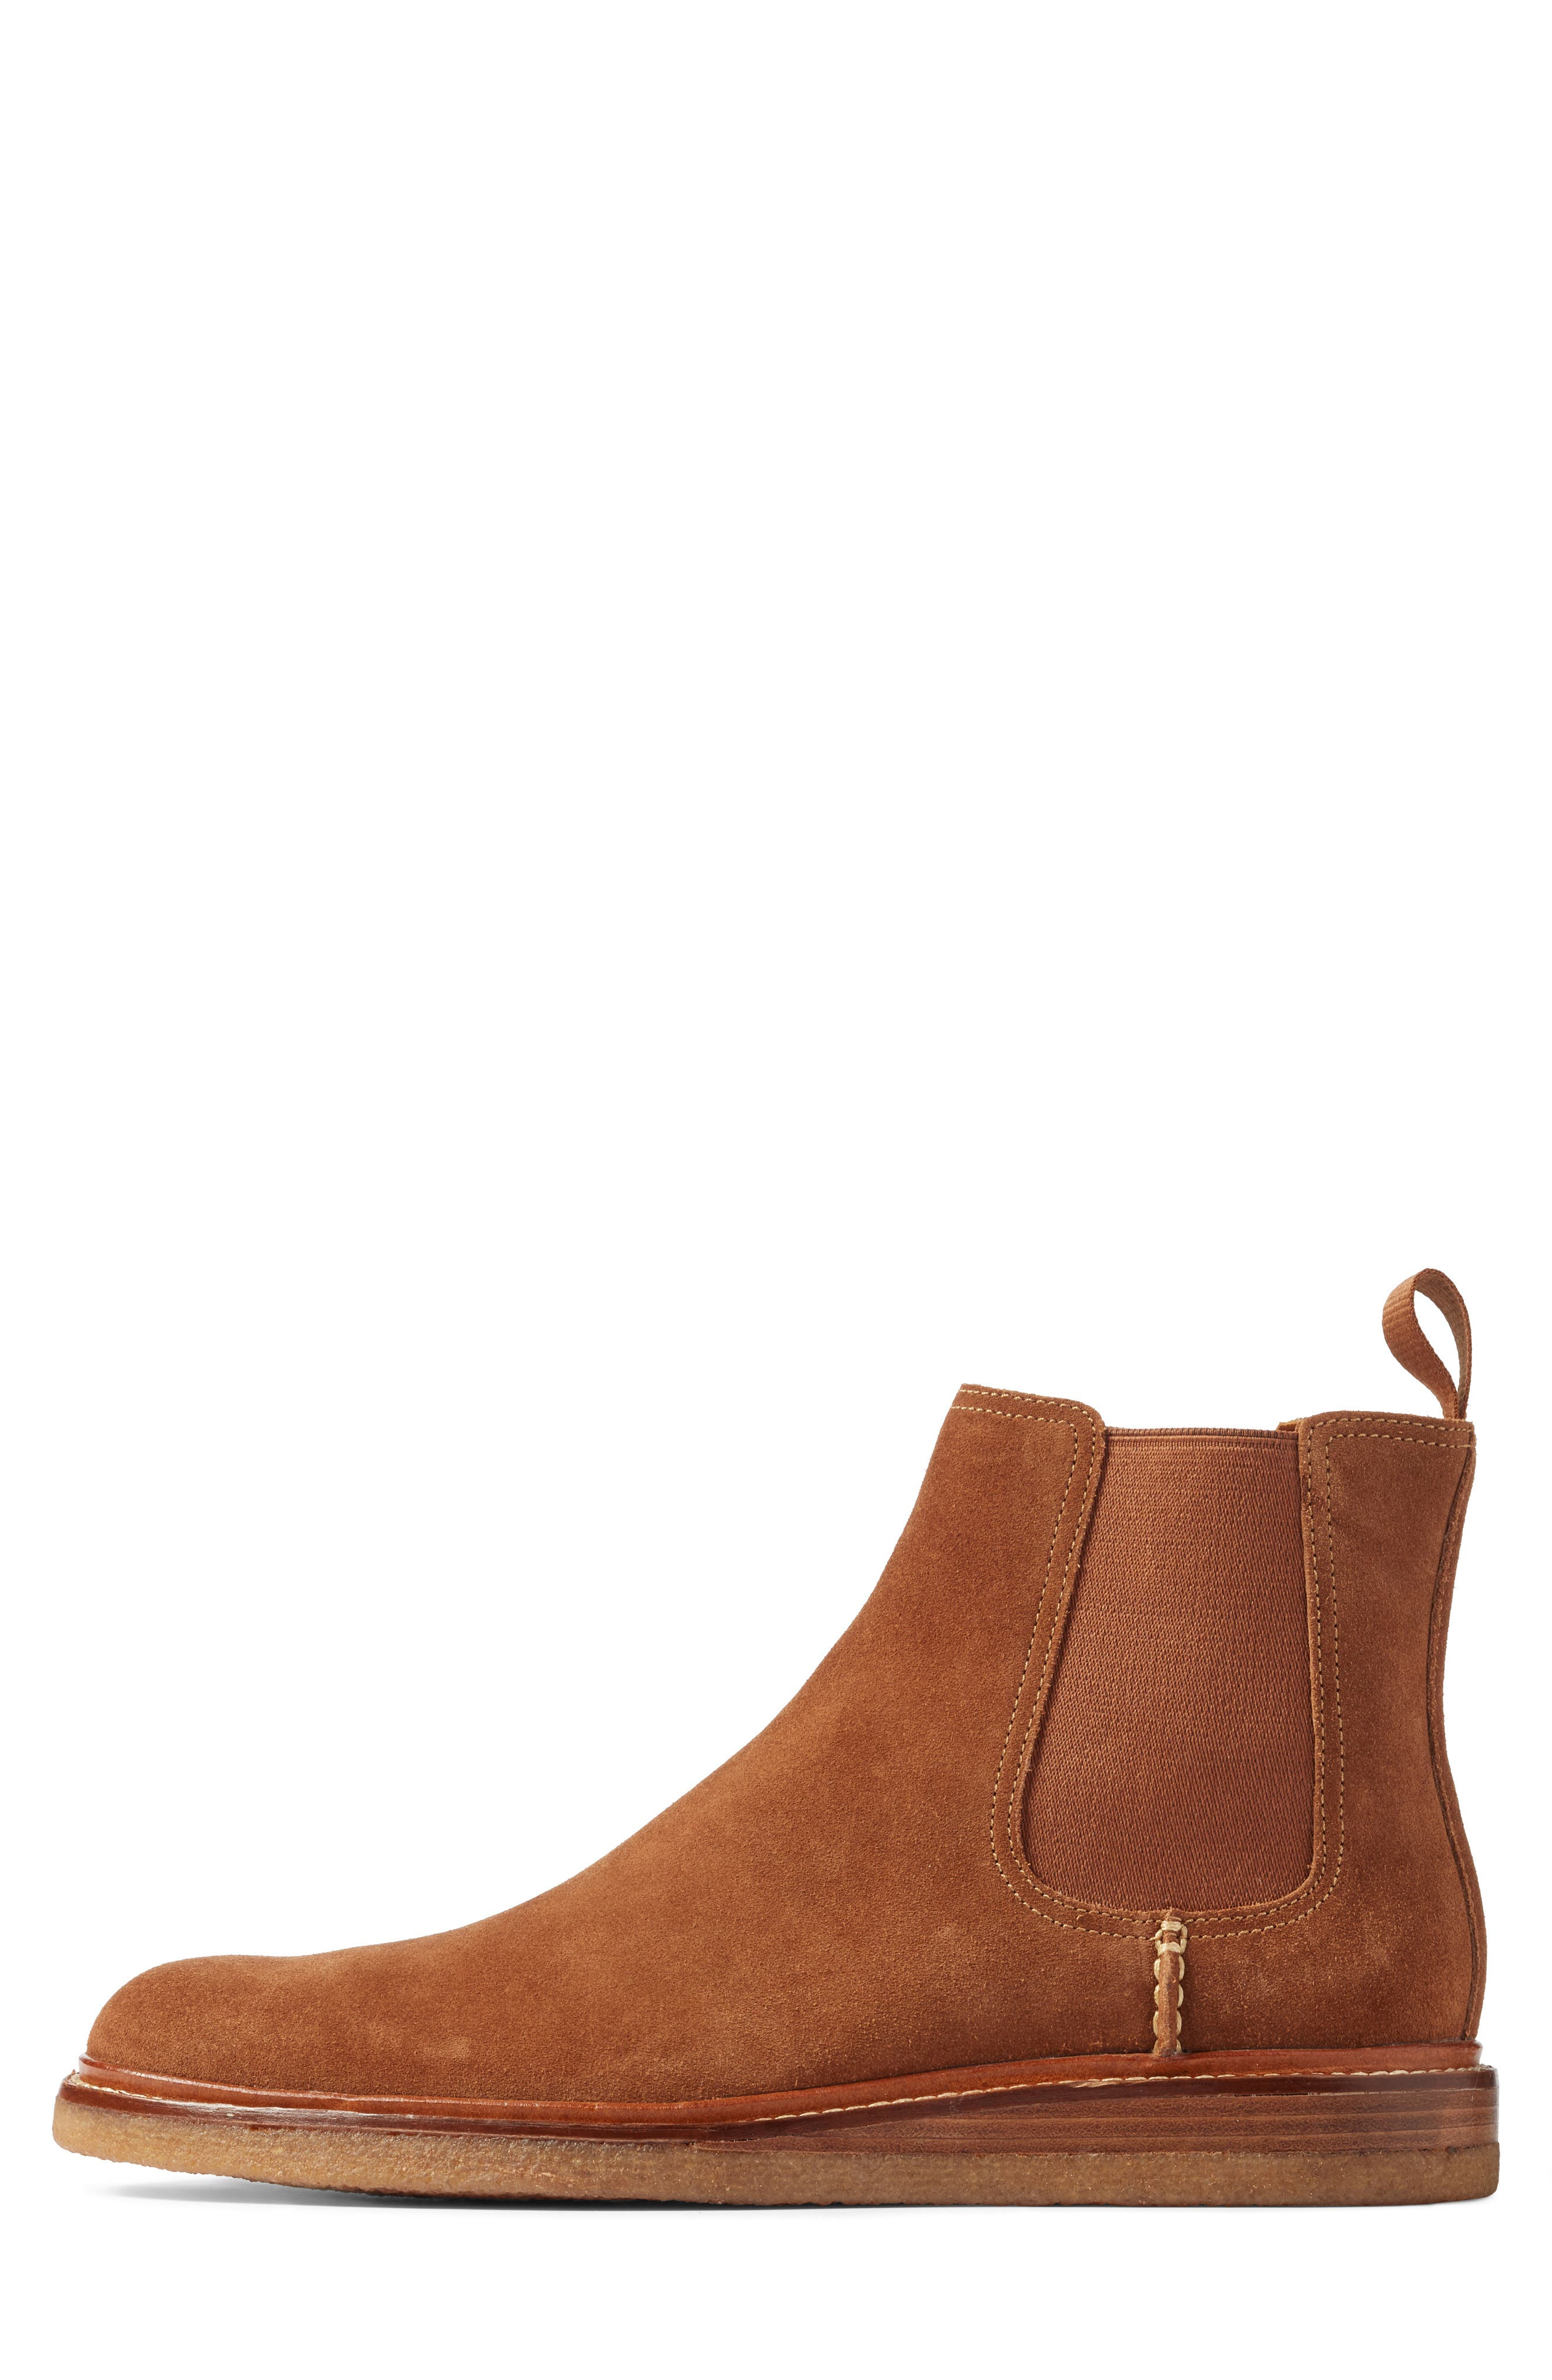 Leather Chelsea Boot,                             Alternate thumbnail 6, color,